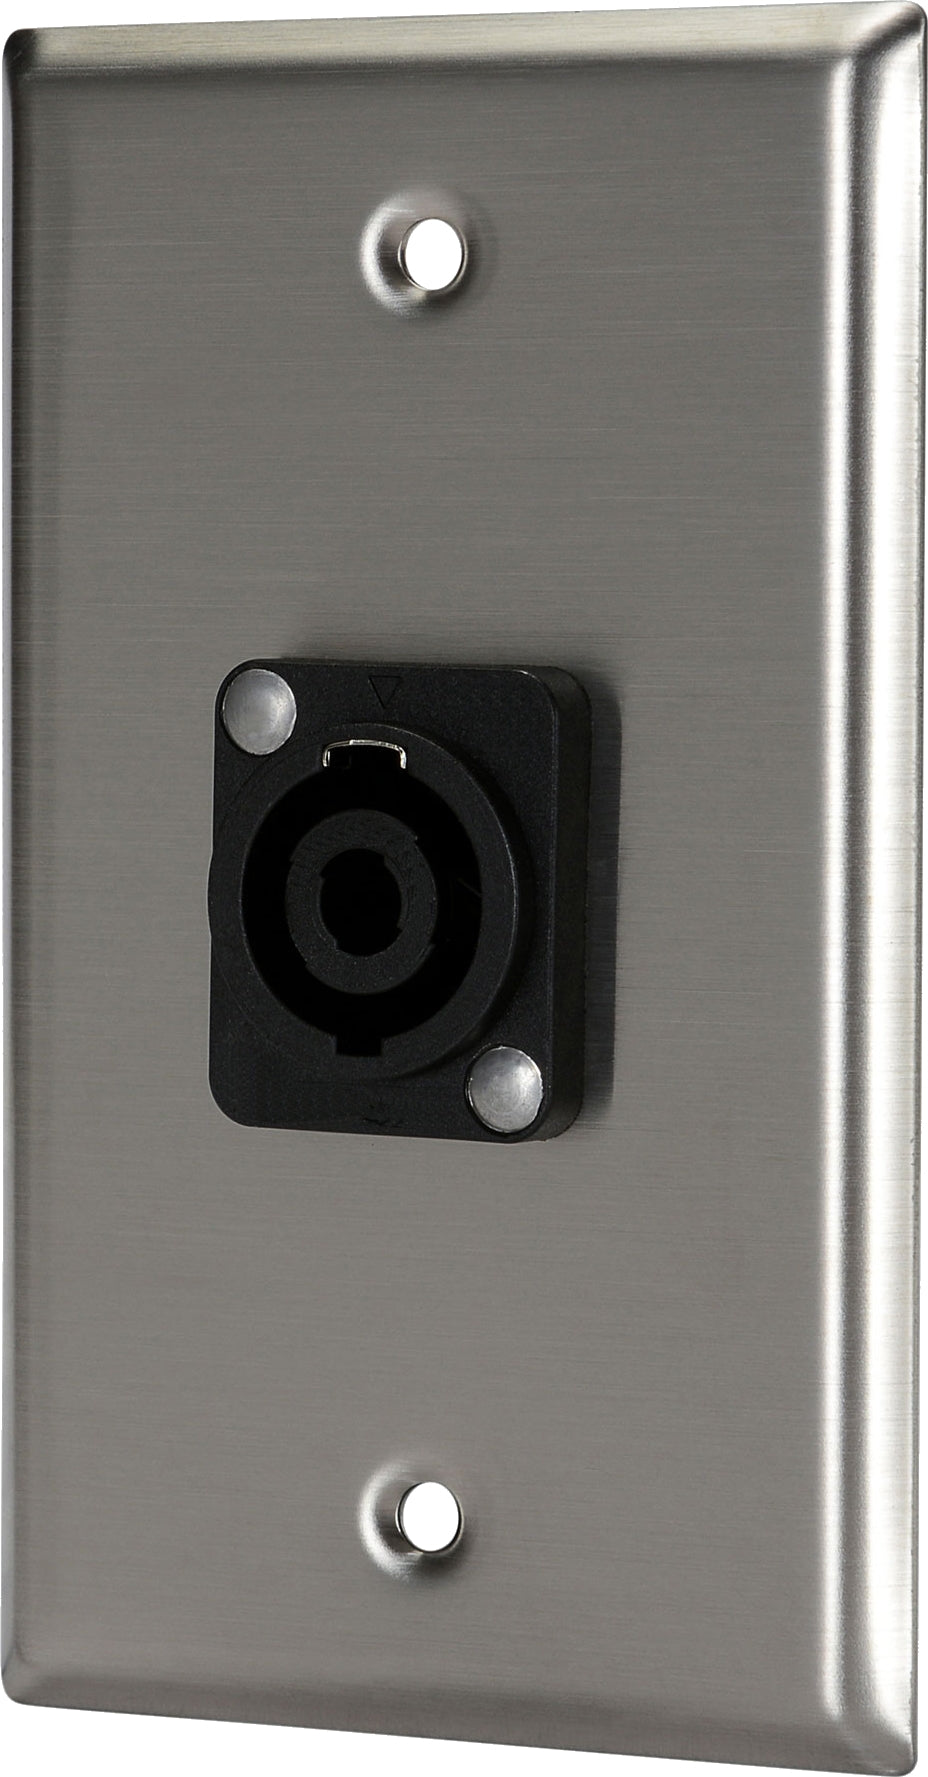 07-6072-26 Stainless Steel Wall Plate with 1*Speakon Female